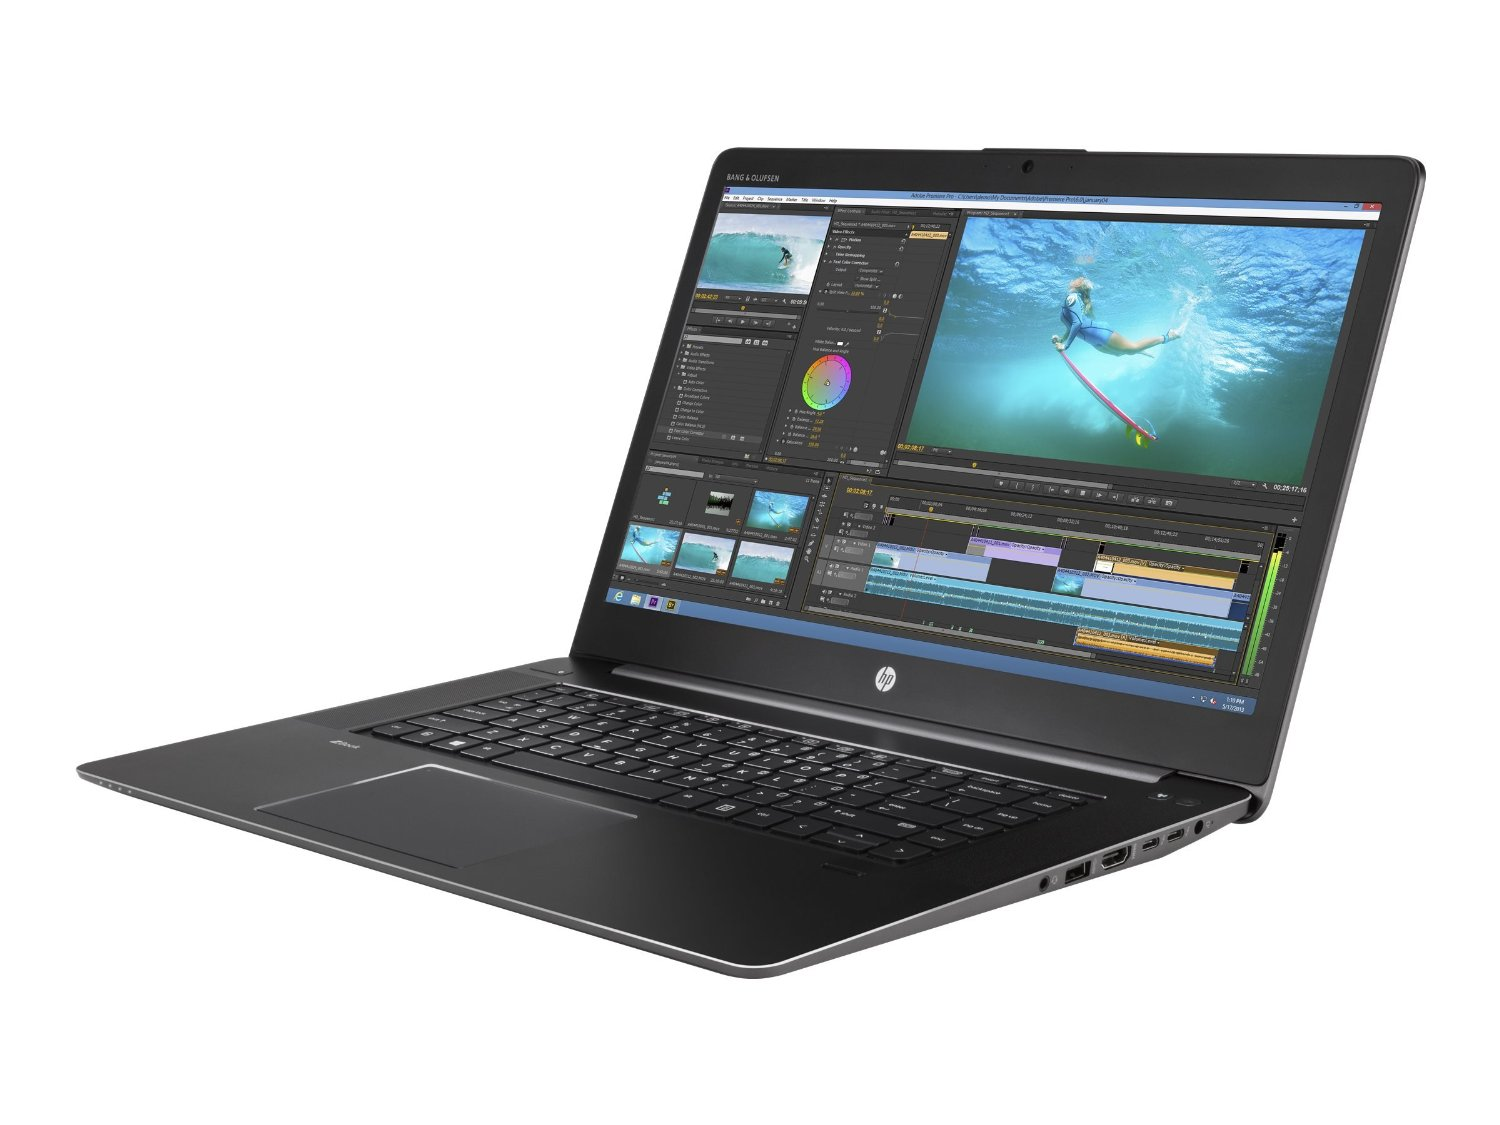 HP ZBook 15 G3 Studio Mobile Workstation Core i7 6820HQ Ram 16GB SSD 512GB 15.6inh 4K Windows 10 Pro